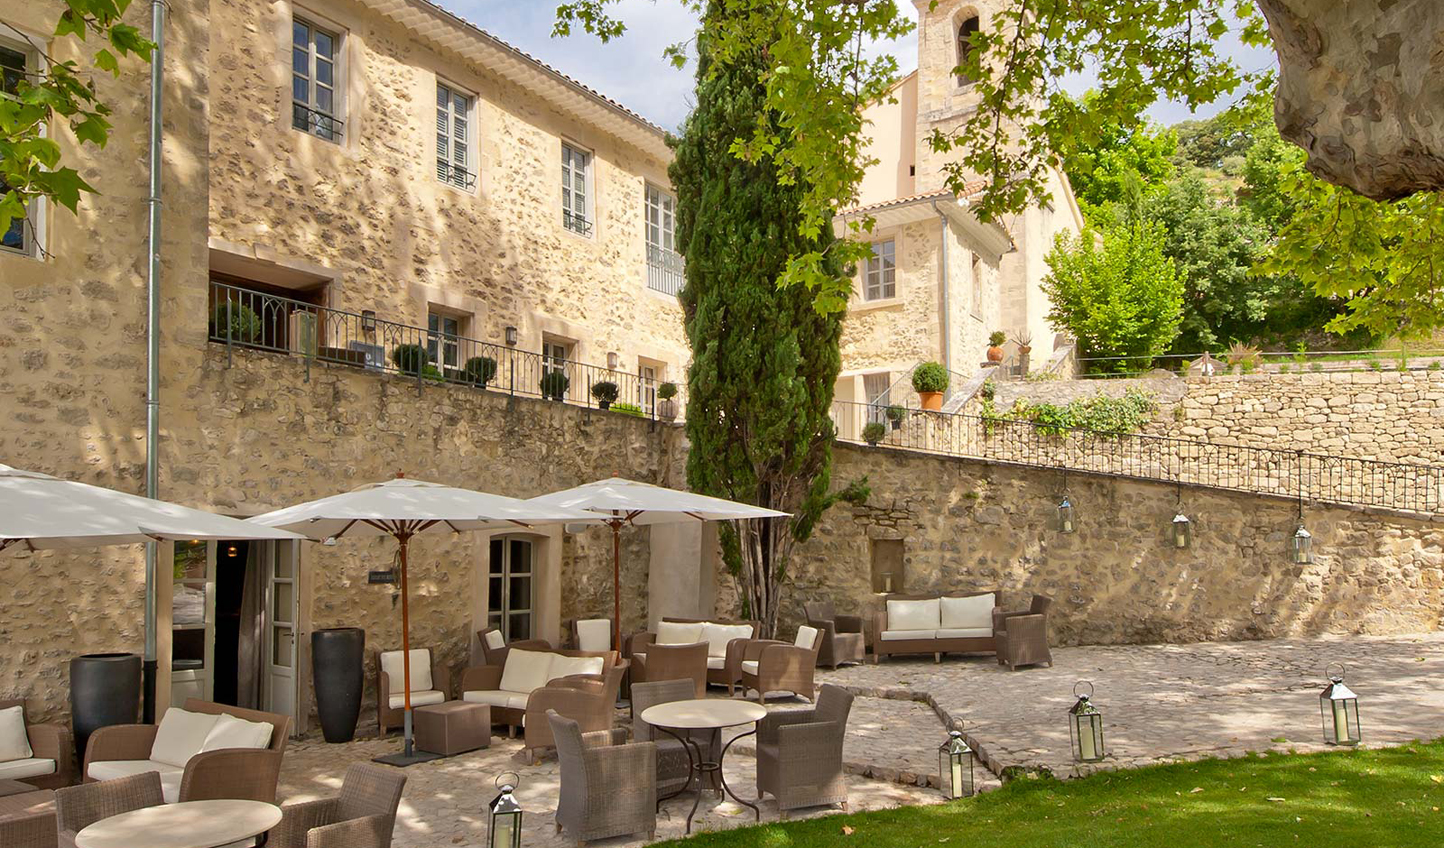 Relax in the tranquil gardens of Couvent des Minimes